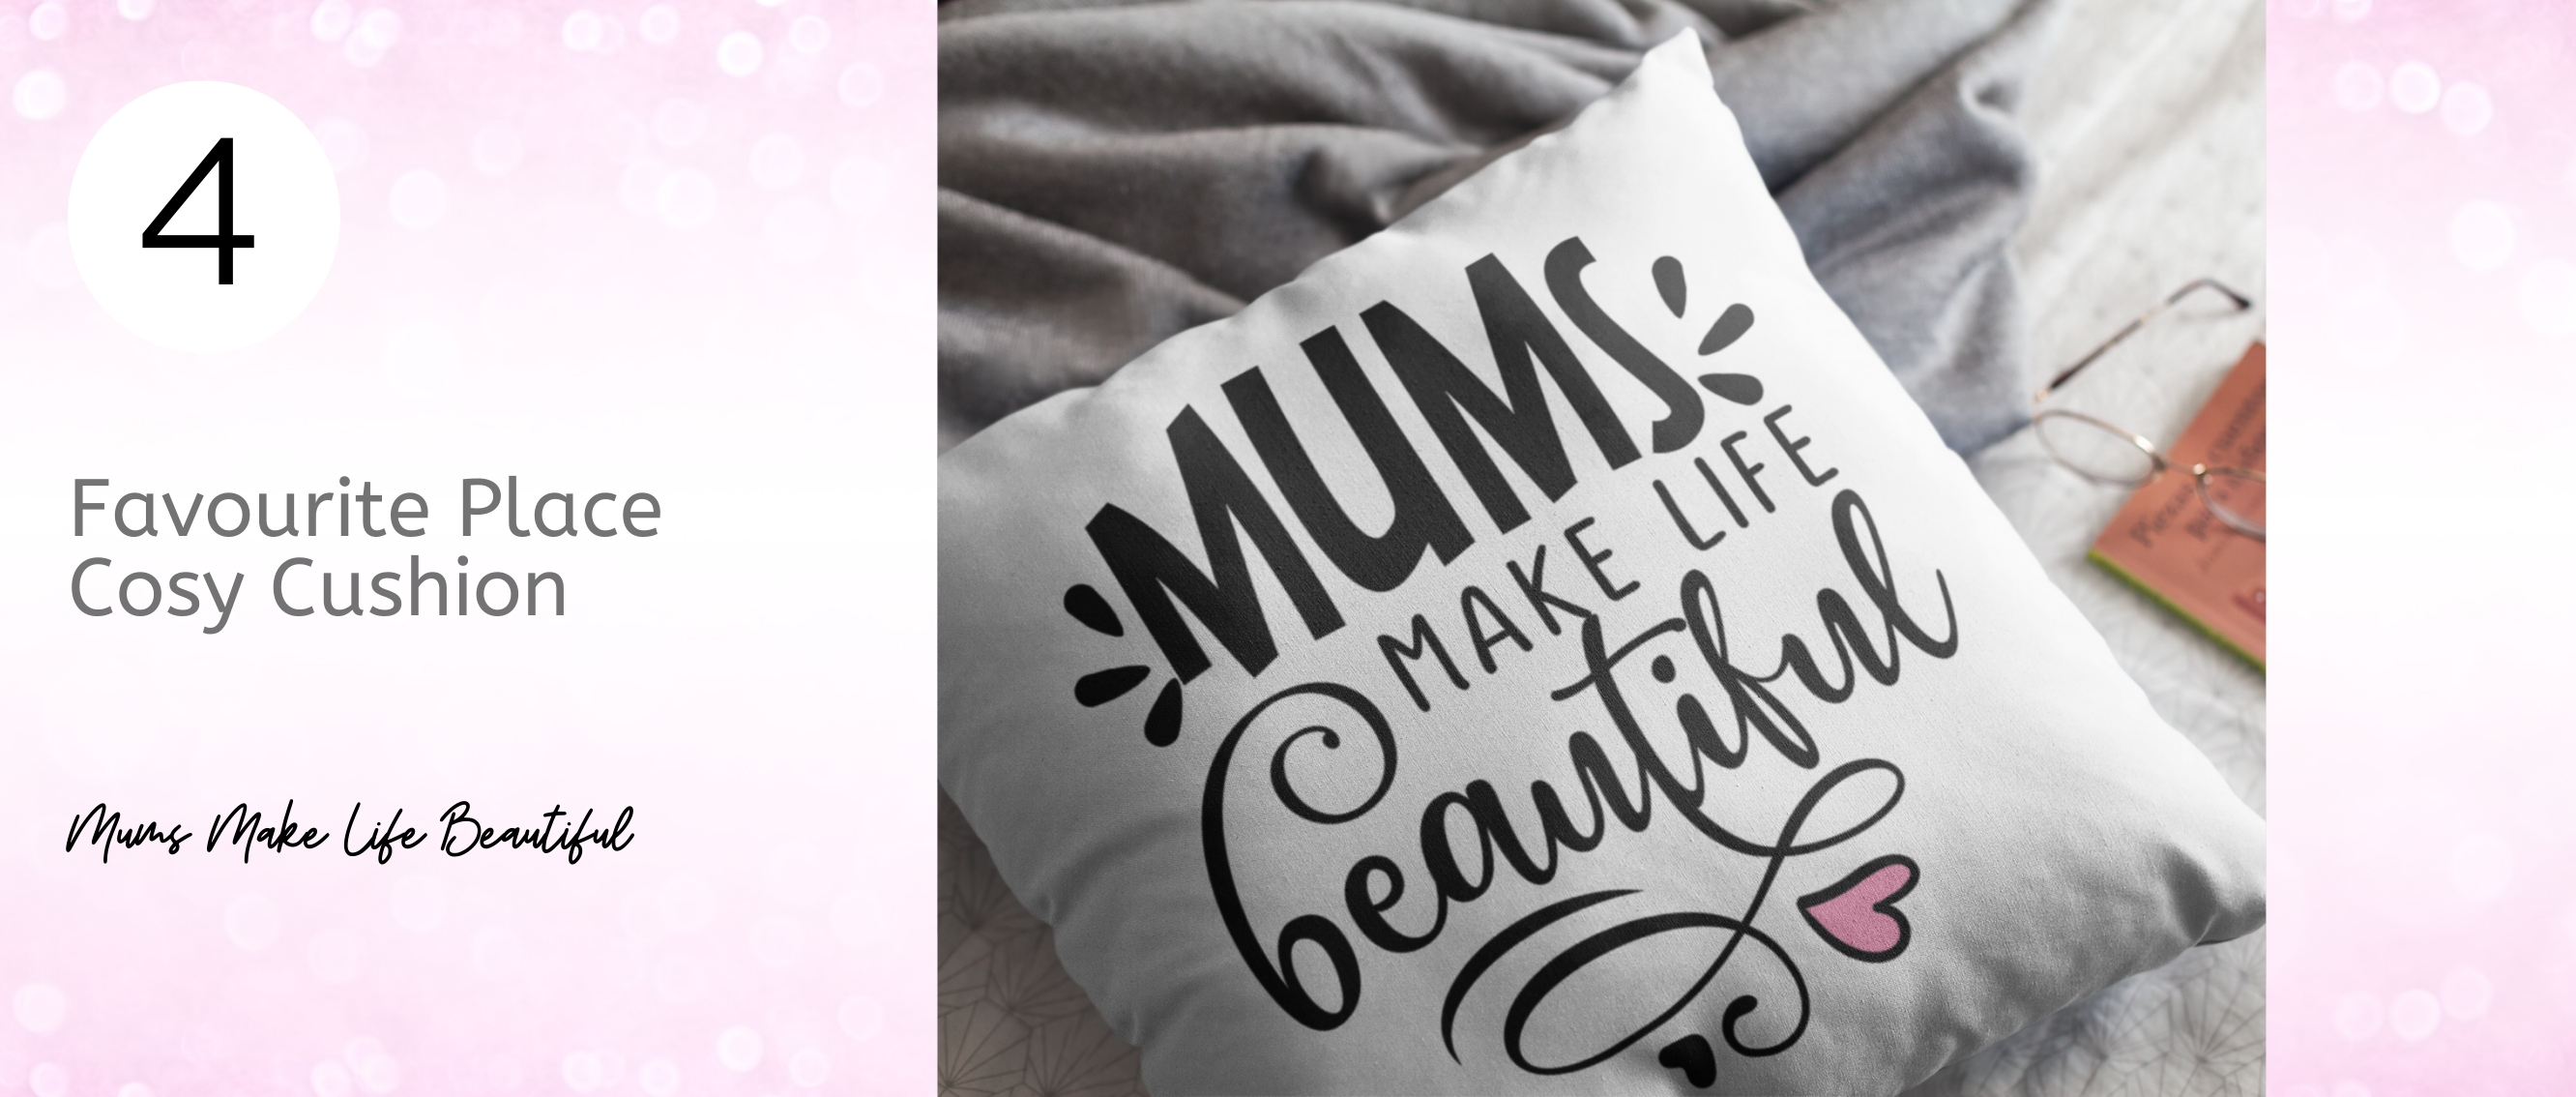 Mums Make Life Beautiful Cushion... from our top 9 genius gift ideas for Mother's Day